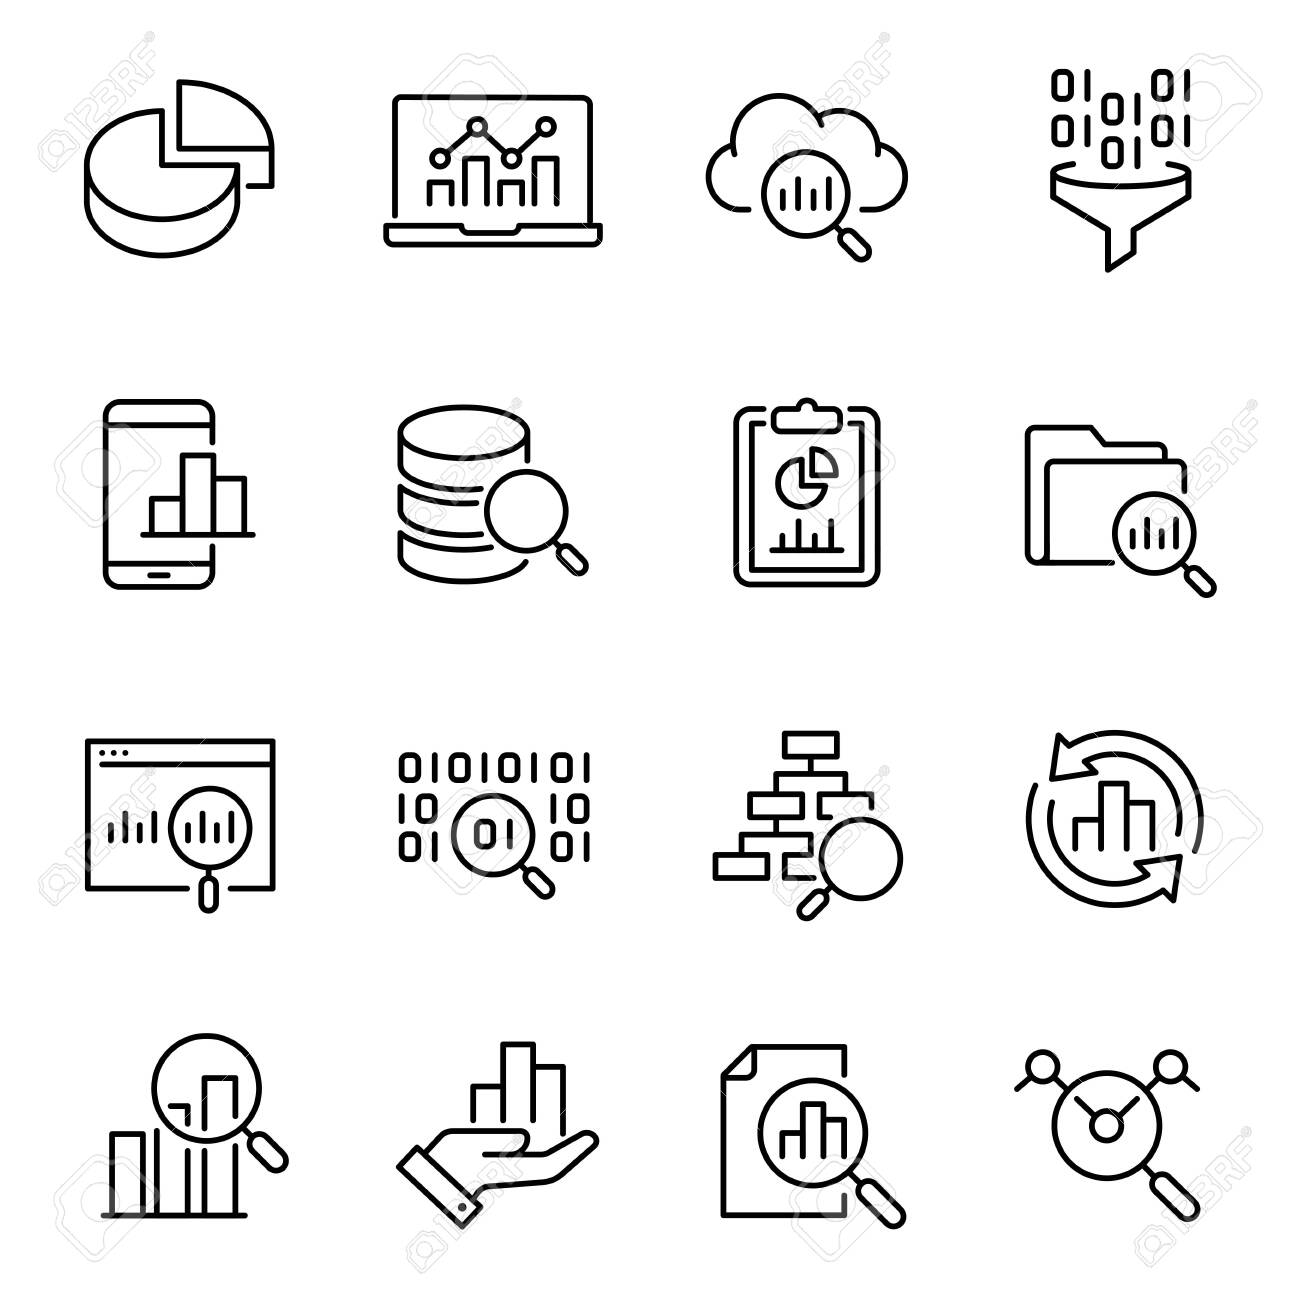 Data analysis, information search vector icons set - 137859254